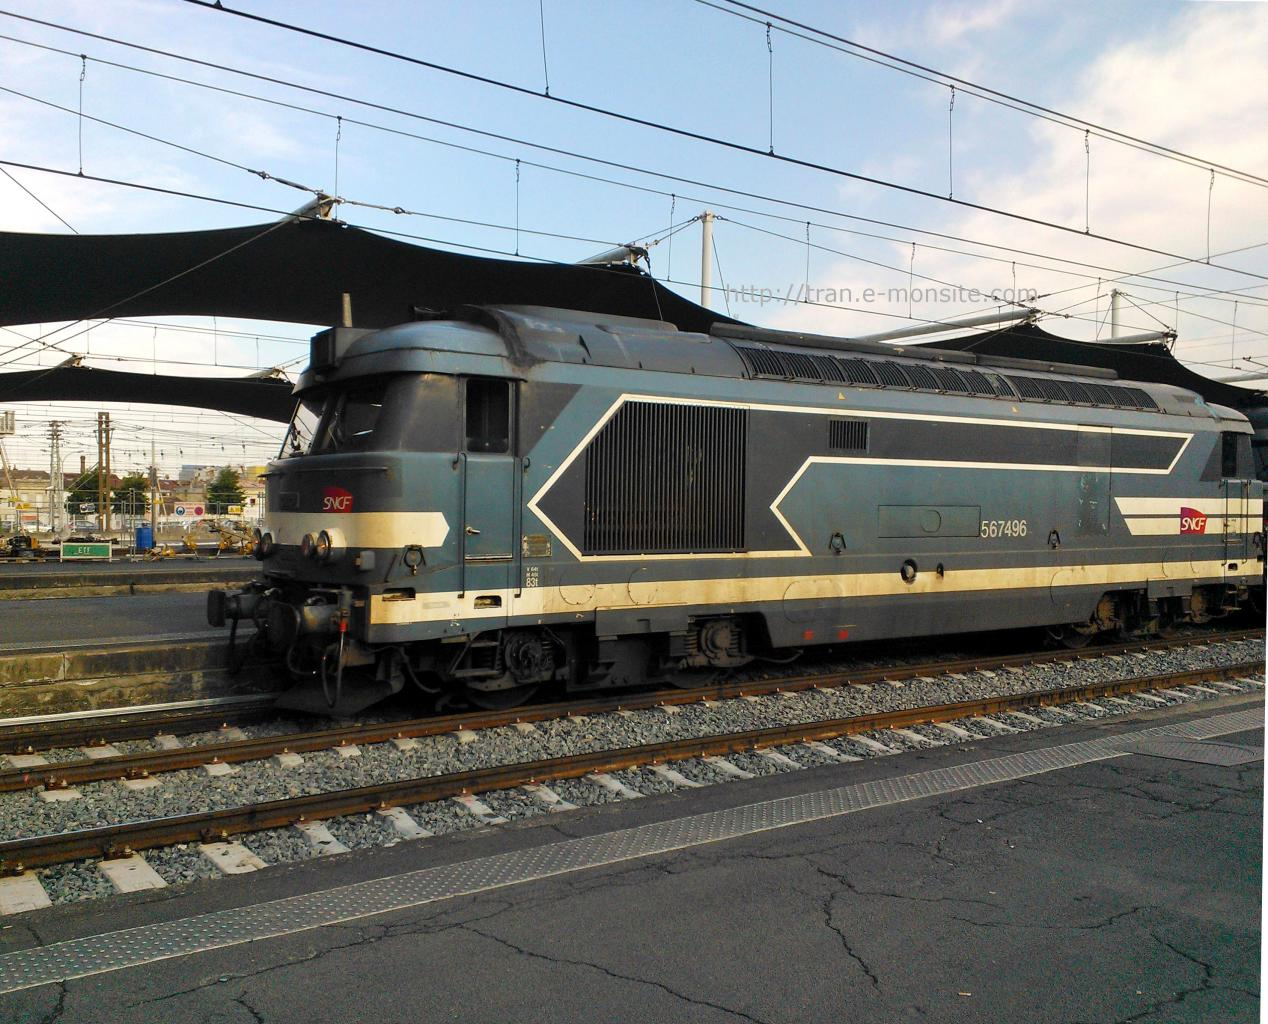 BB 67496 en gare de Bordeaux le 25/07/14